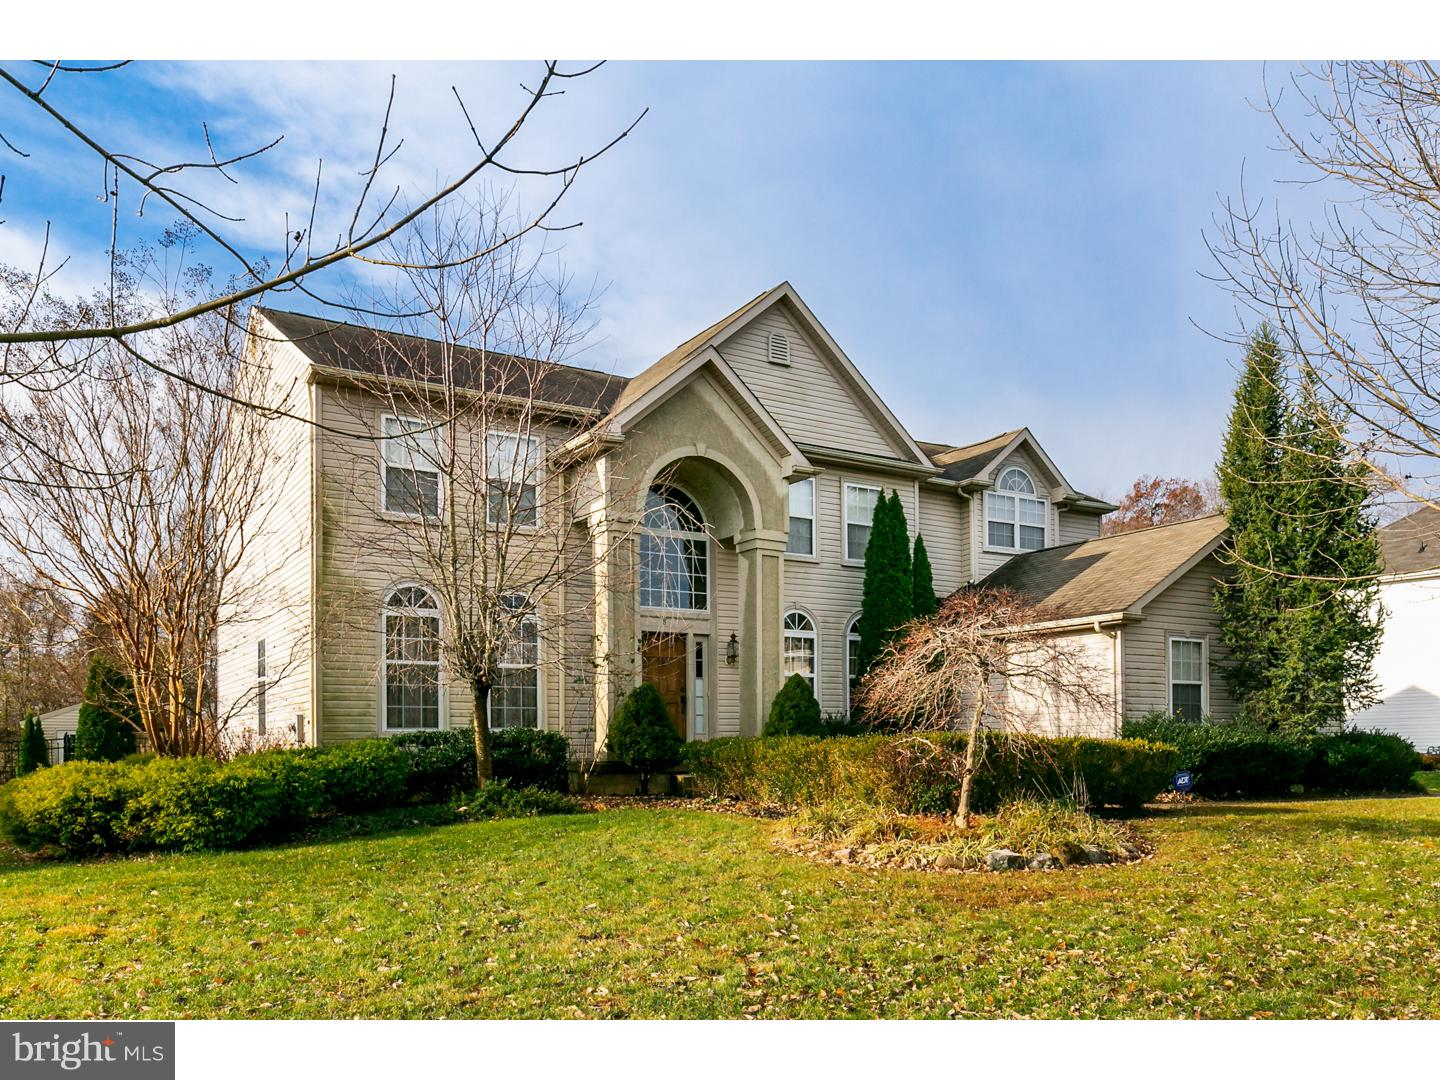 8 WAGON ROAD, LUMBERTON, NJ 08048